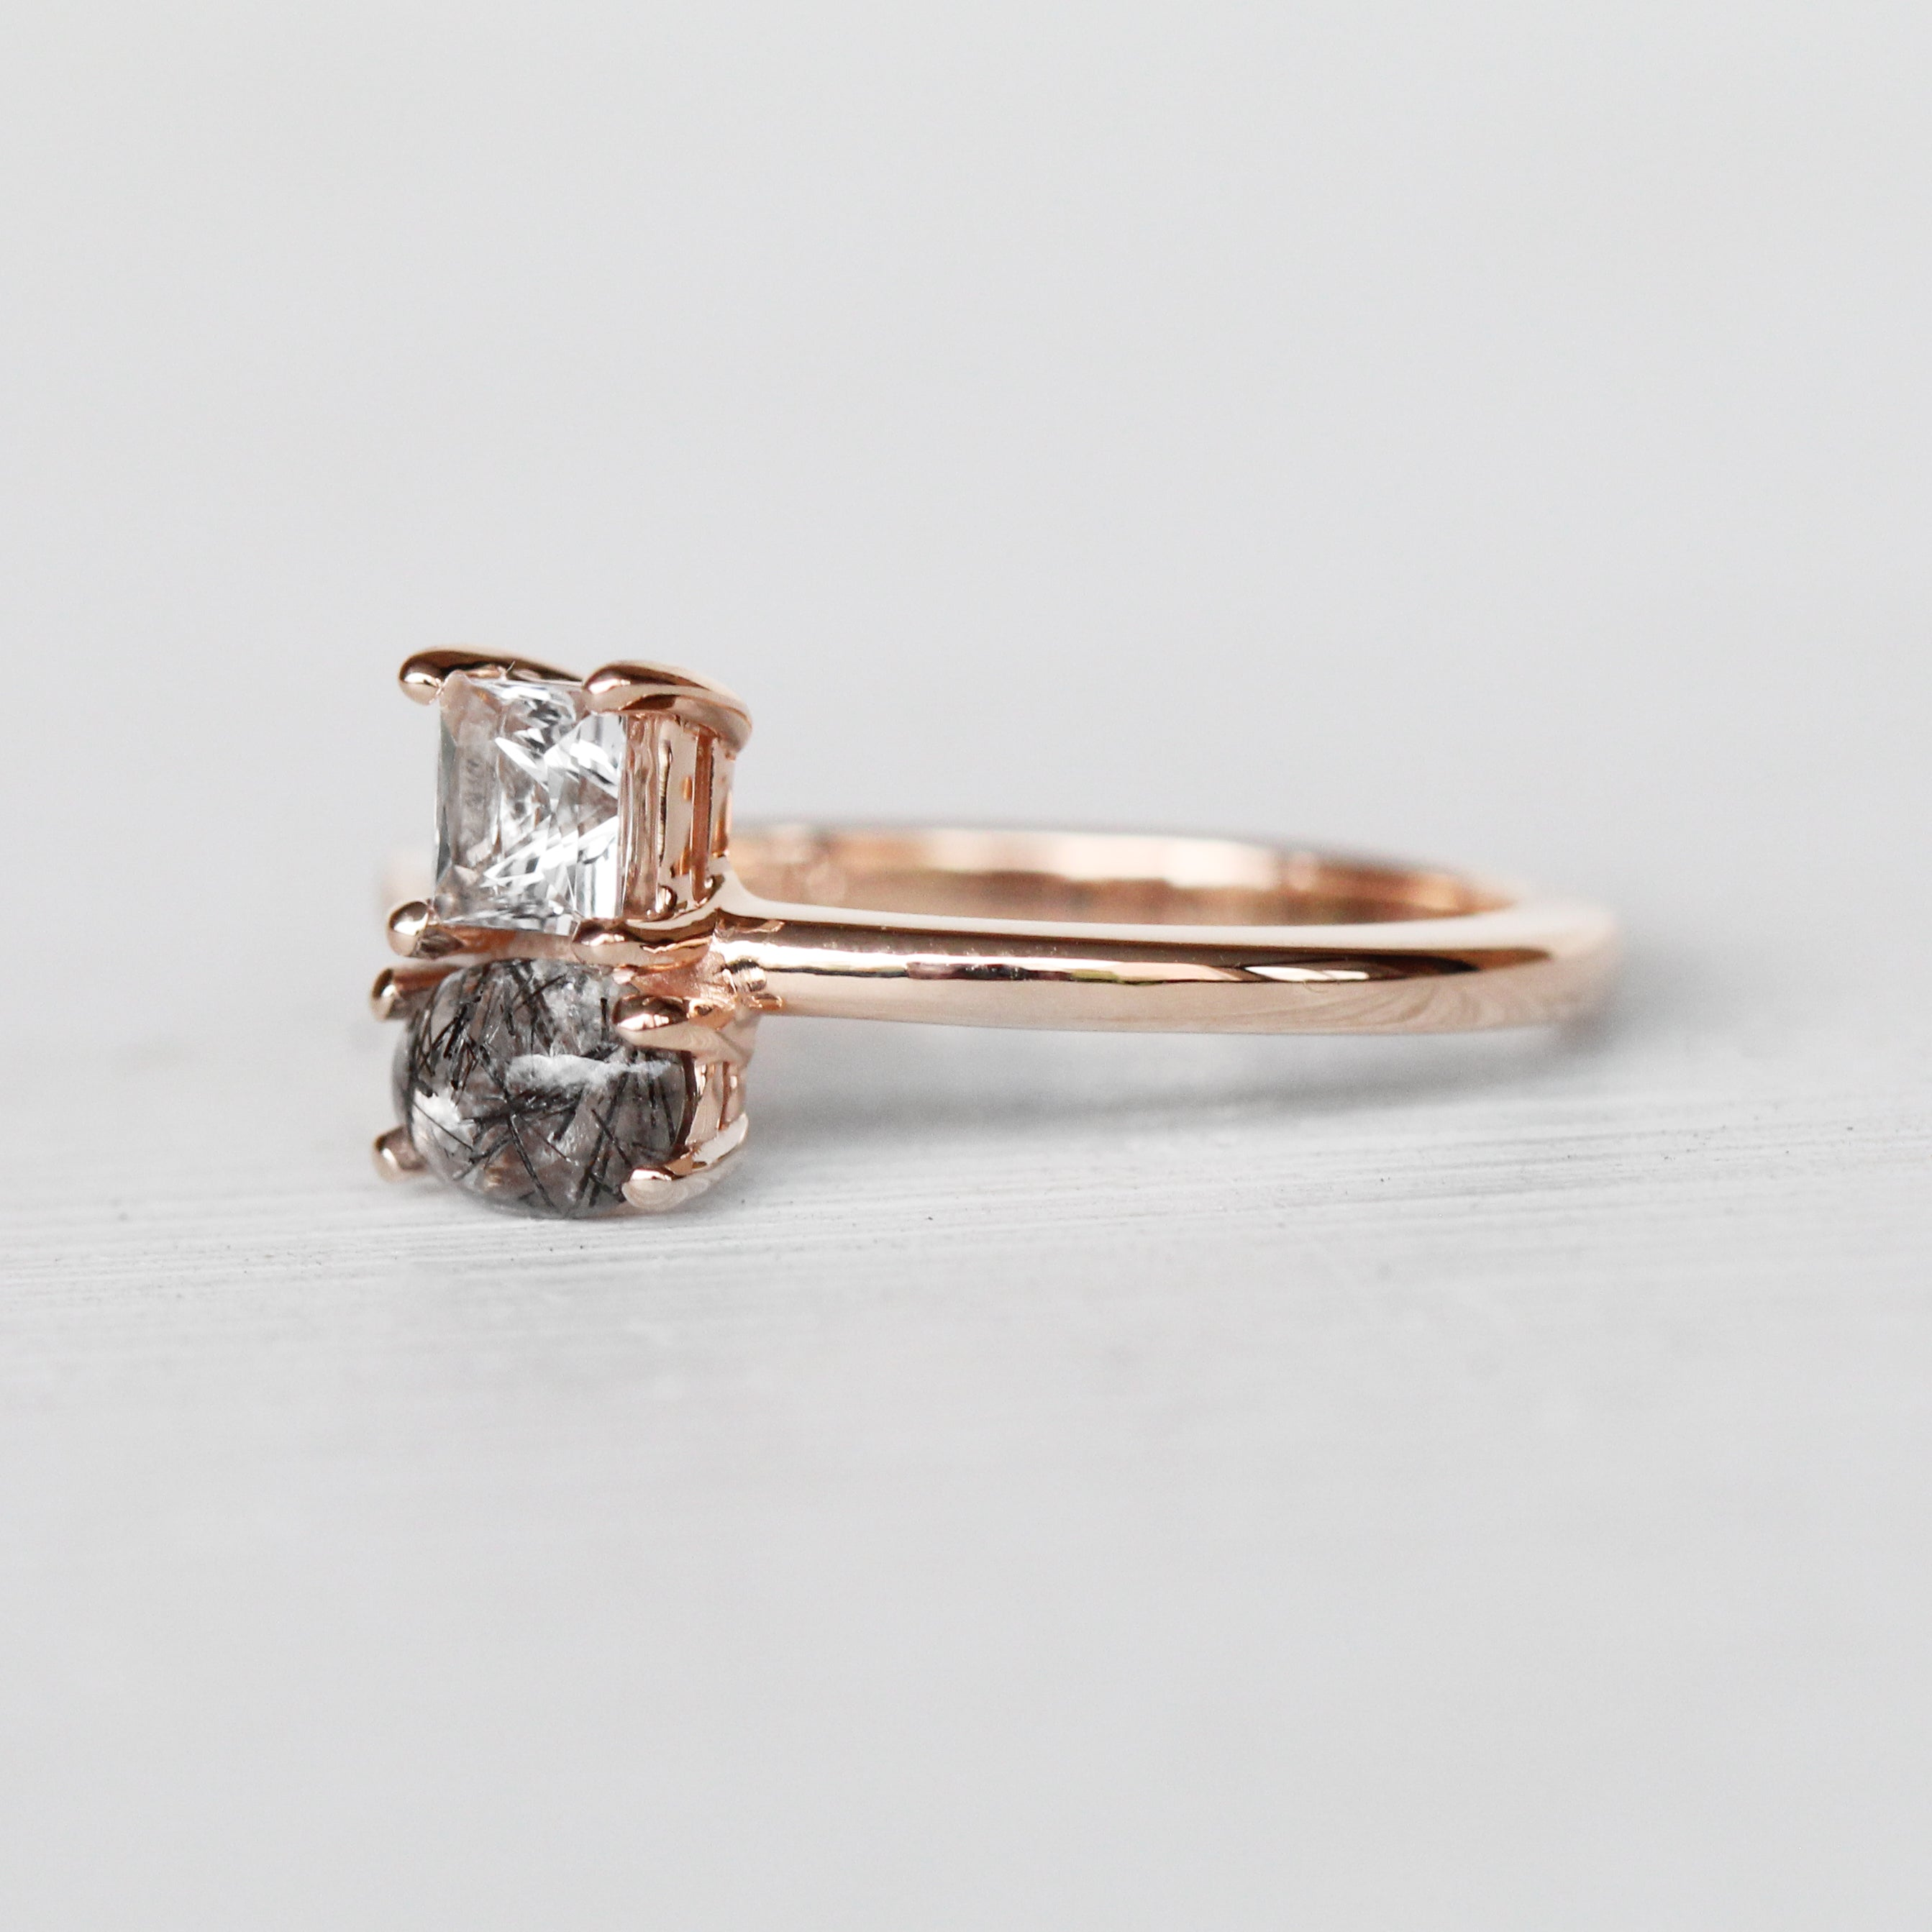 Eleadora Topaz + Tourmalinated Quartz Asymmetrical Double Ring in 10k Rose Gold - Ready to Size and Ship - Celestial Diamonds ® by Midwinter Co.